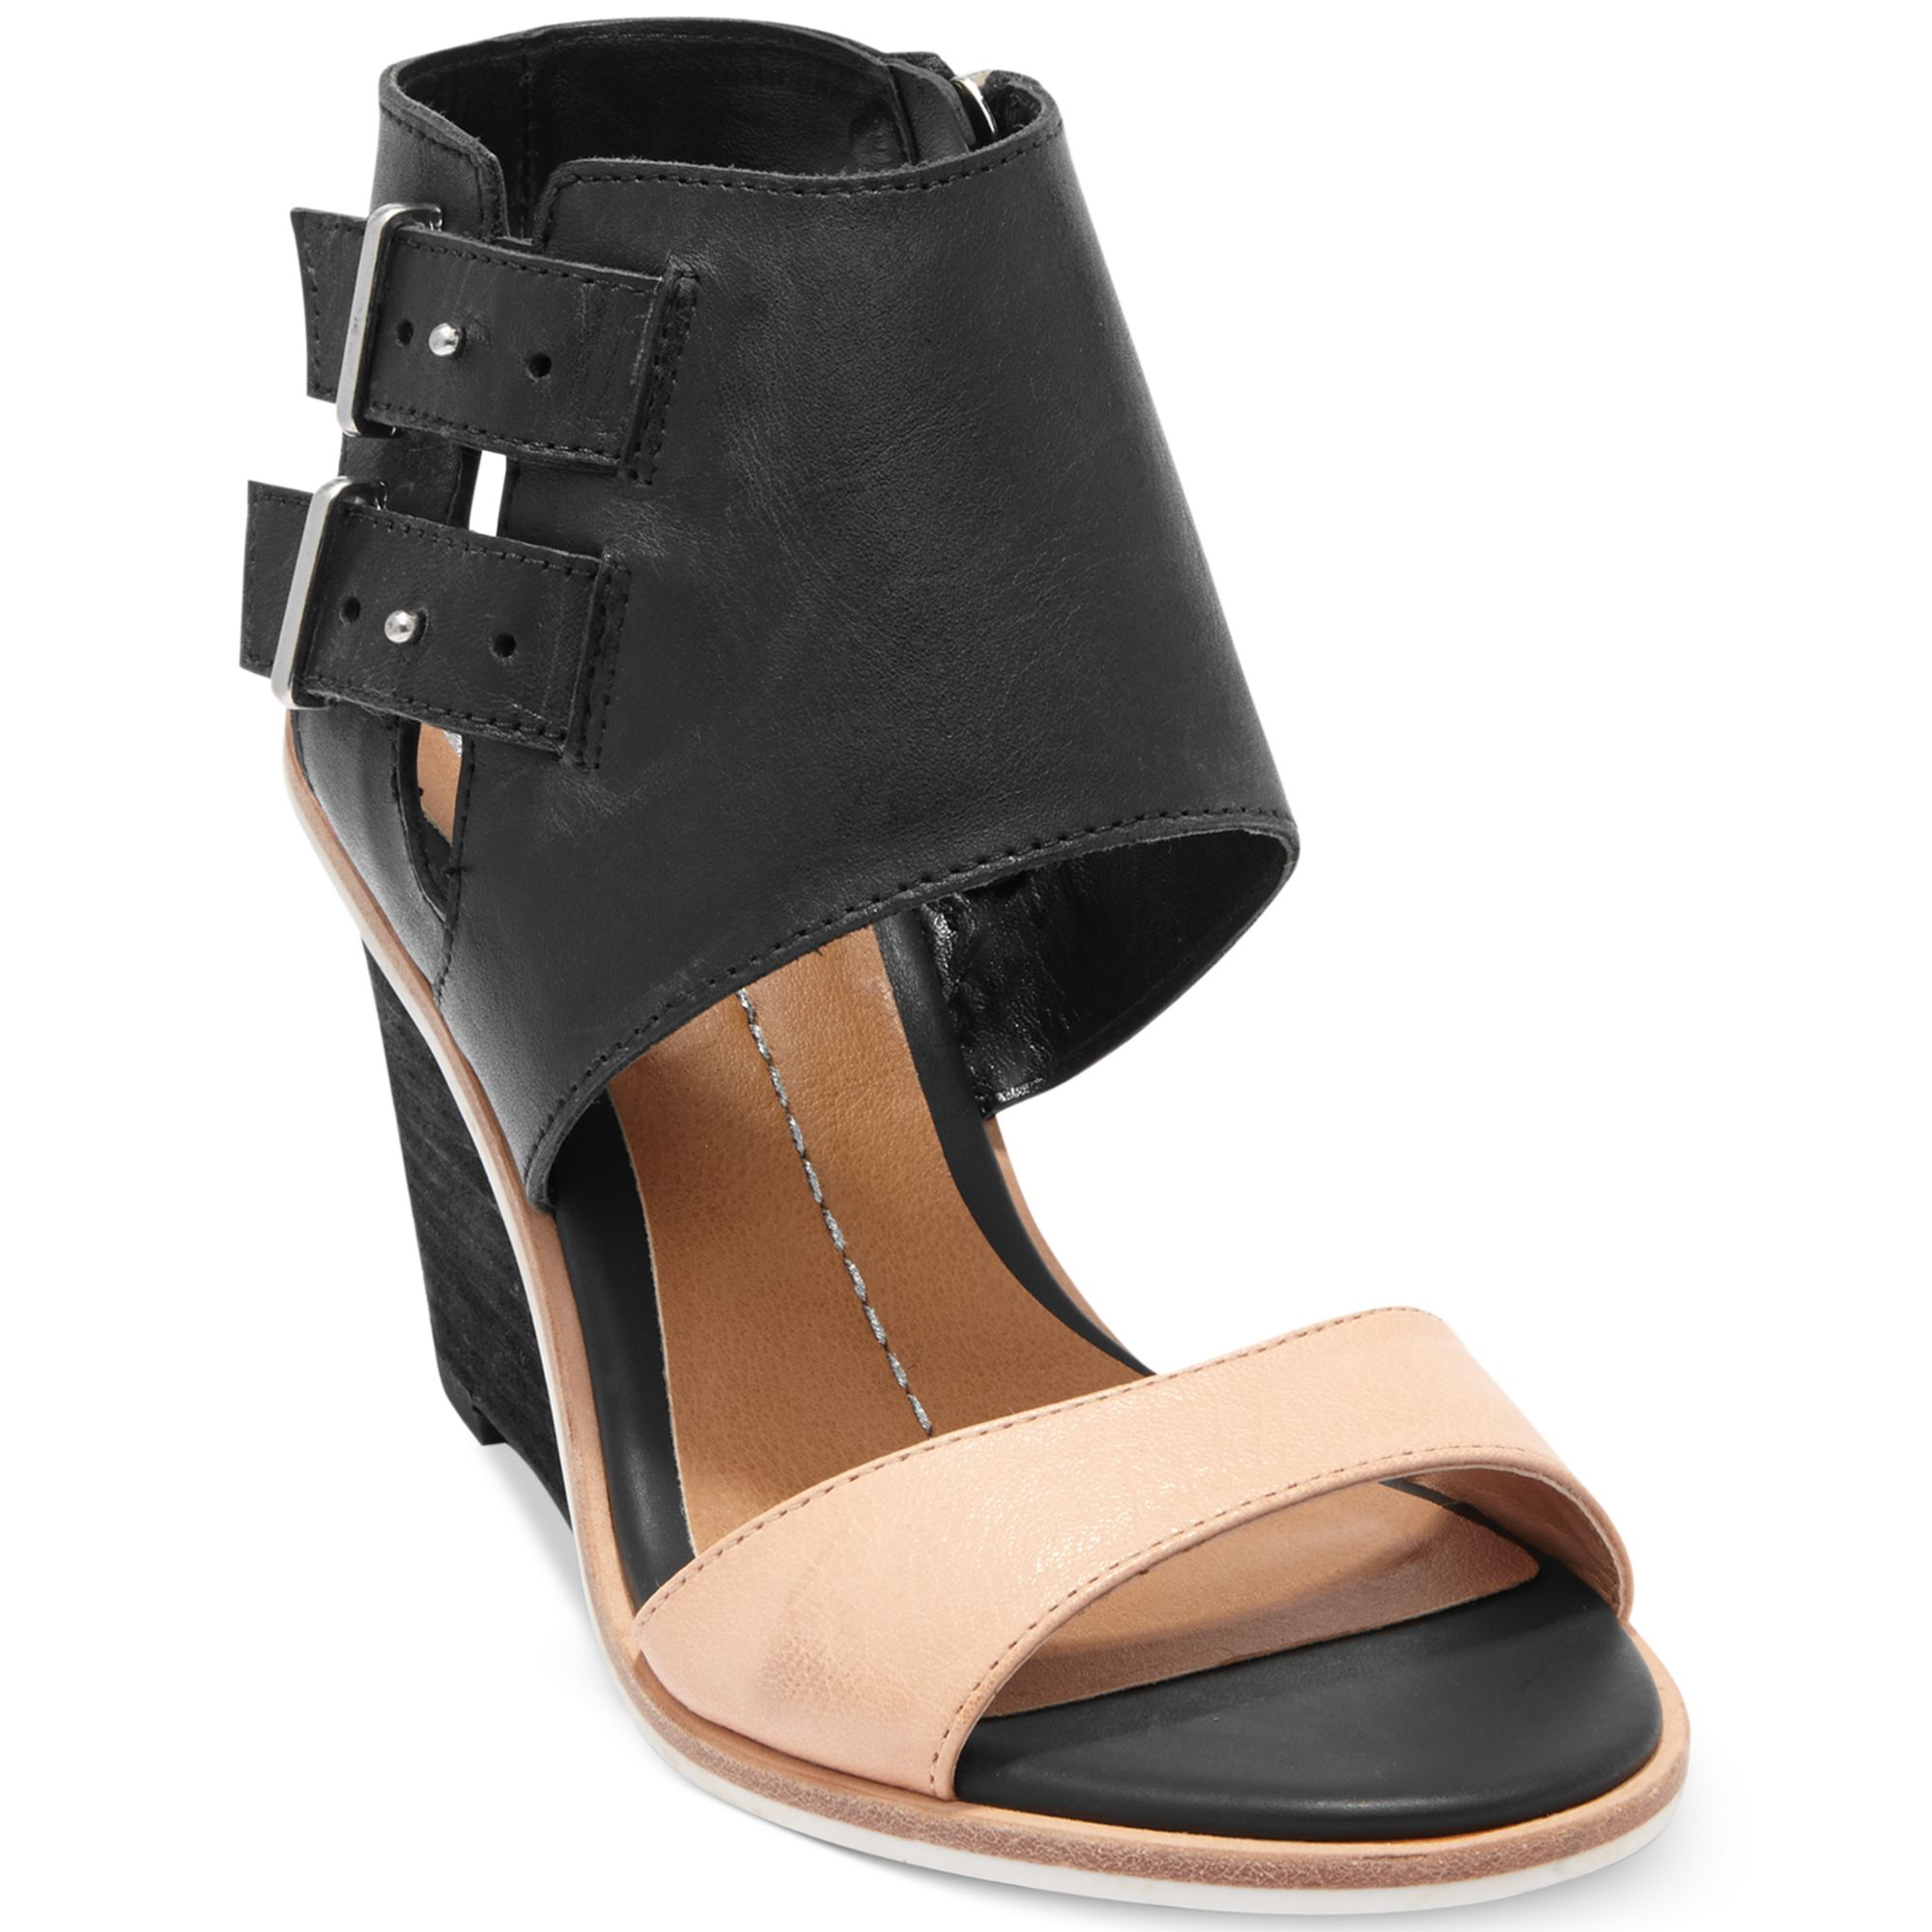 dolce vita dv by cambria wedge sandals in black lyst